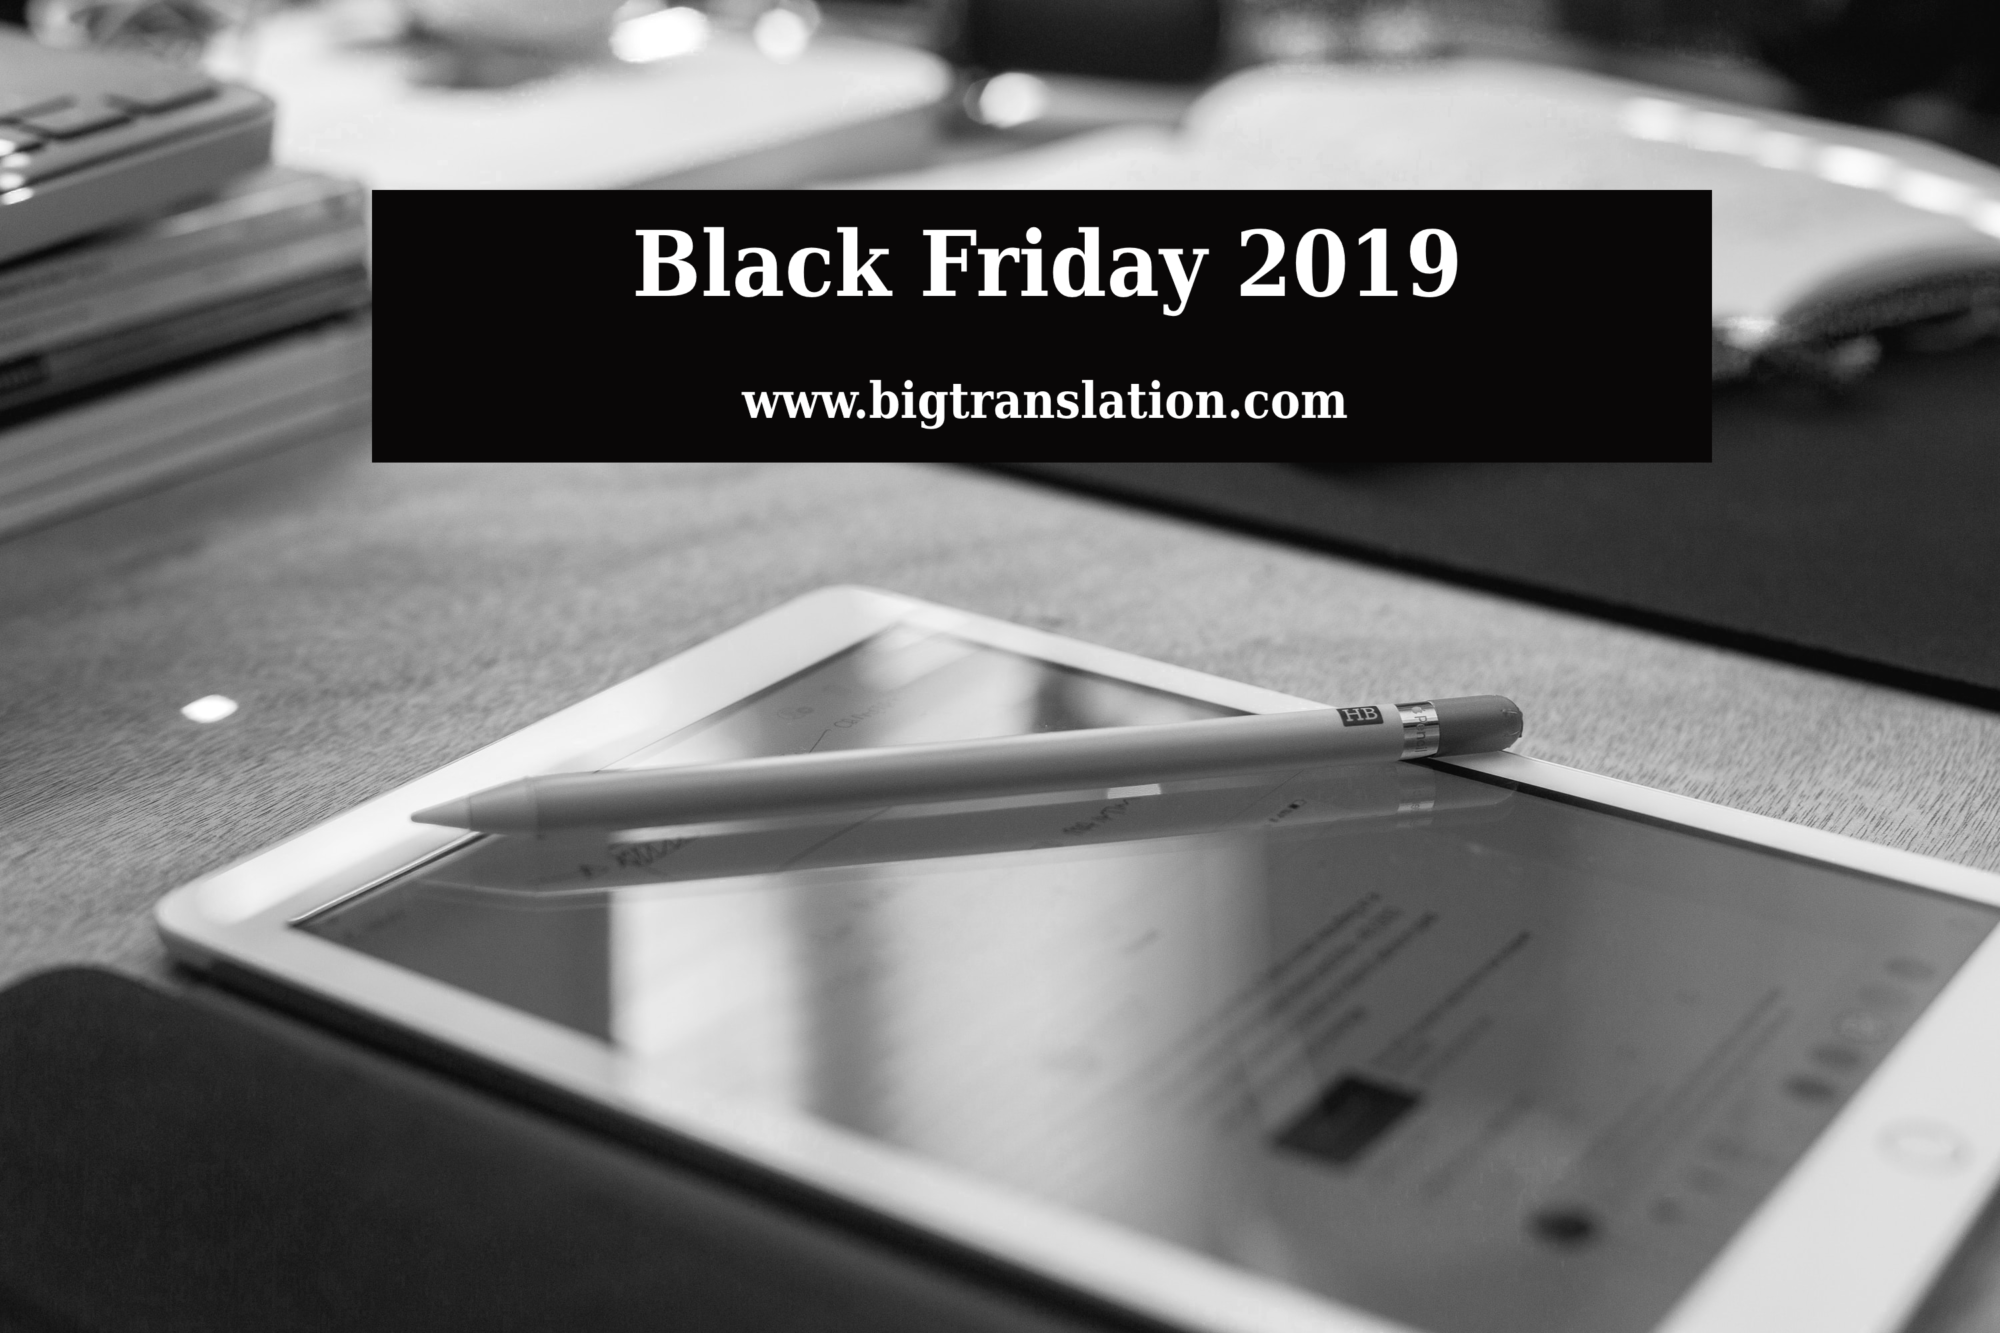 Black Friday 2019 ¿Está tu negocio preparado?